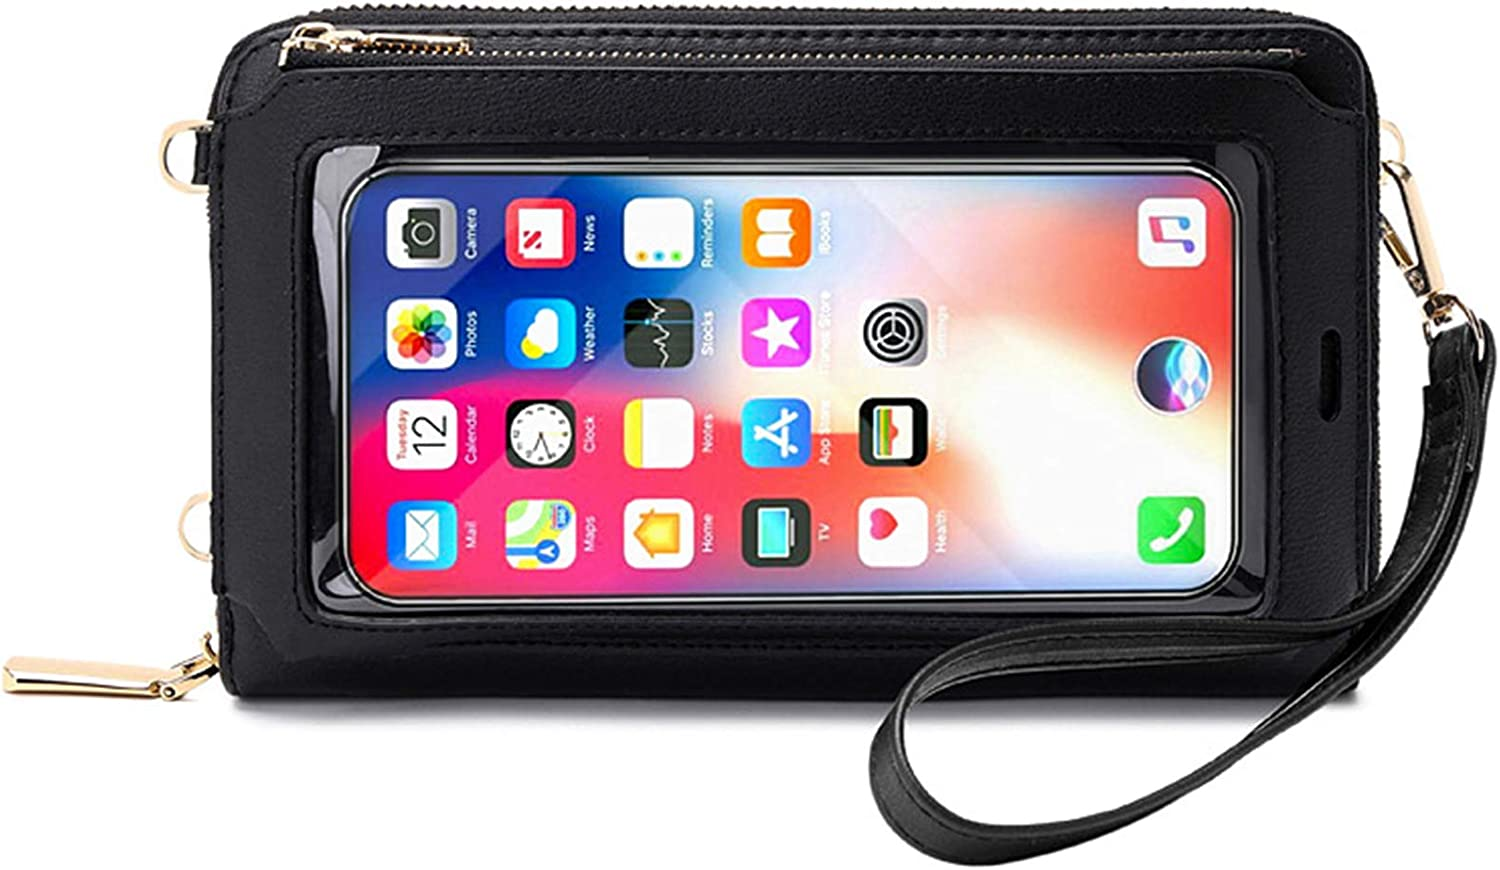 Women Touch Screen Purse Small Crossbody Phone Bag RFID Protection Wristlet Cell Phone Wallet